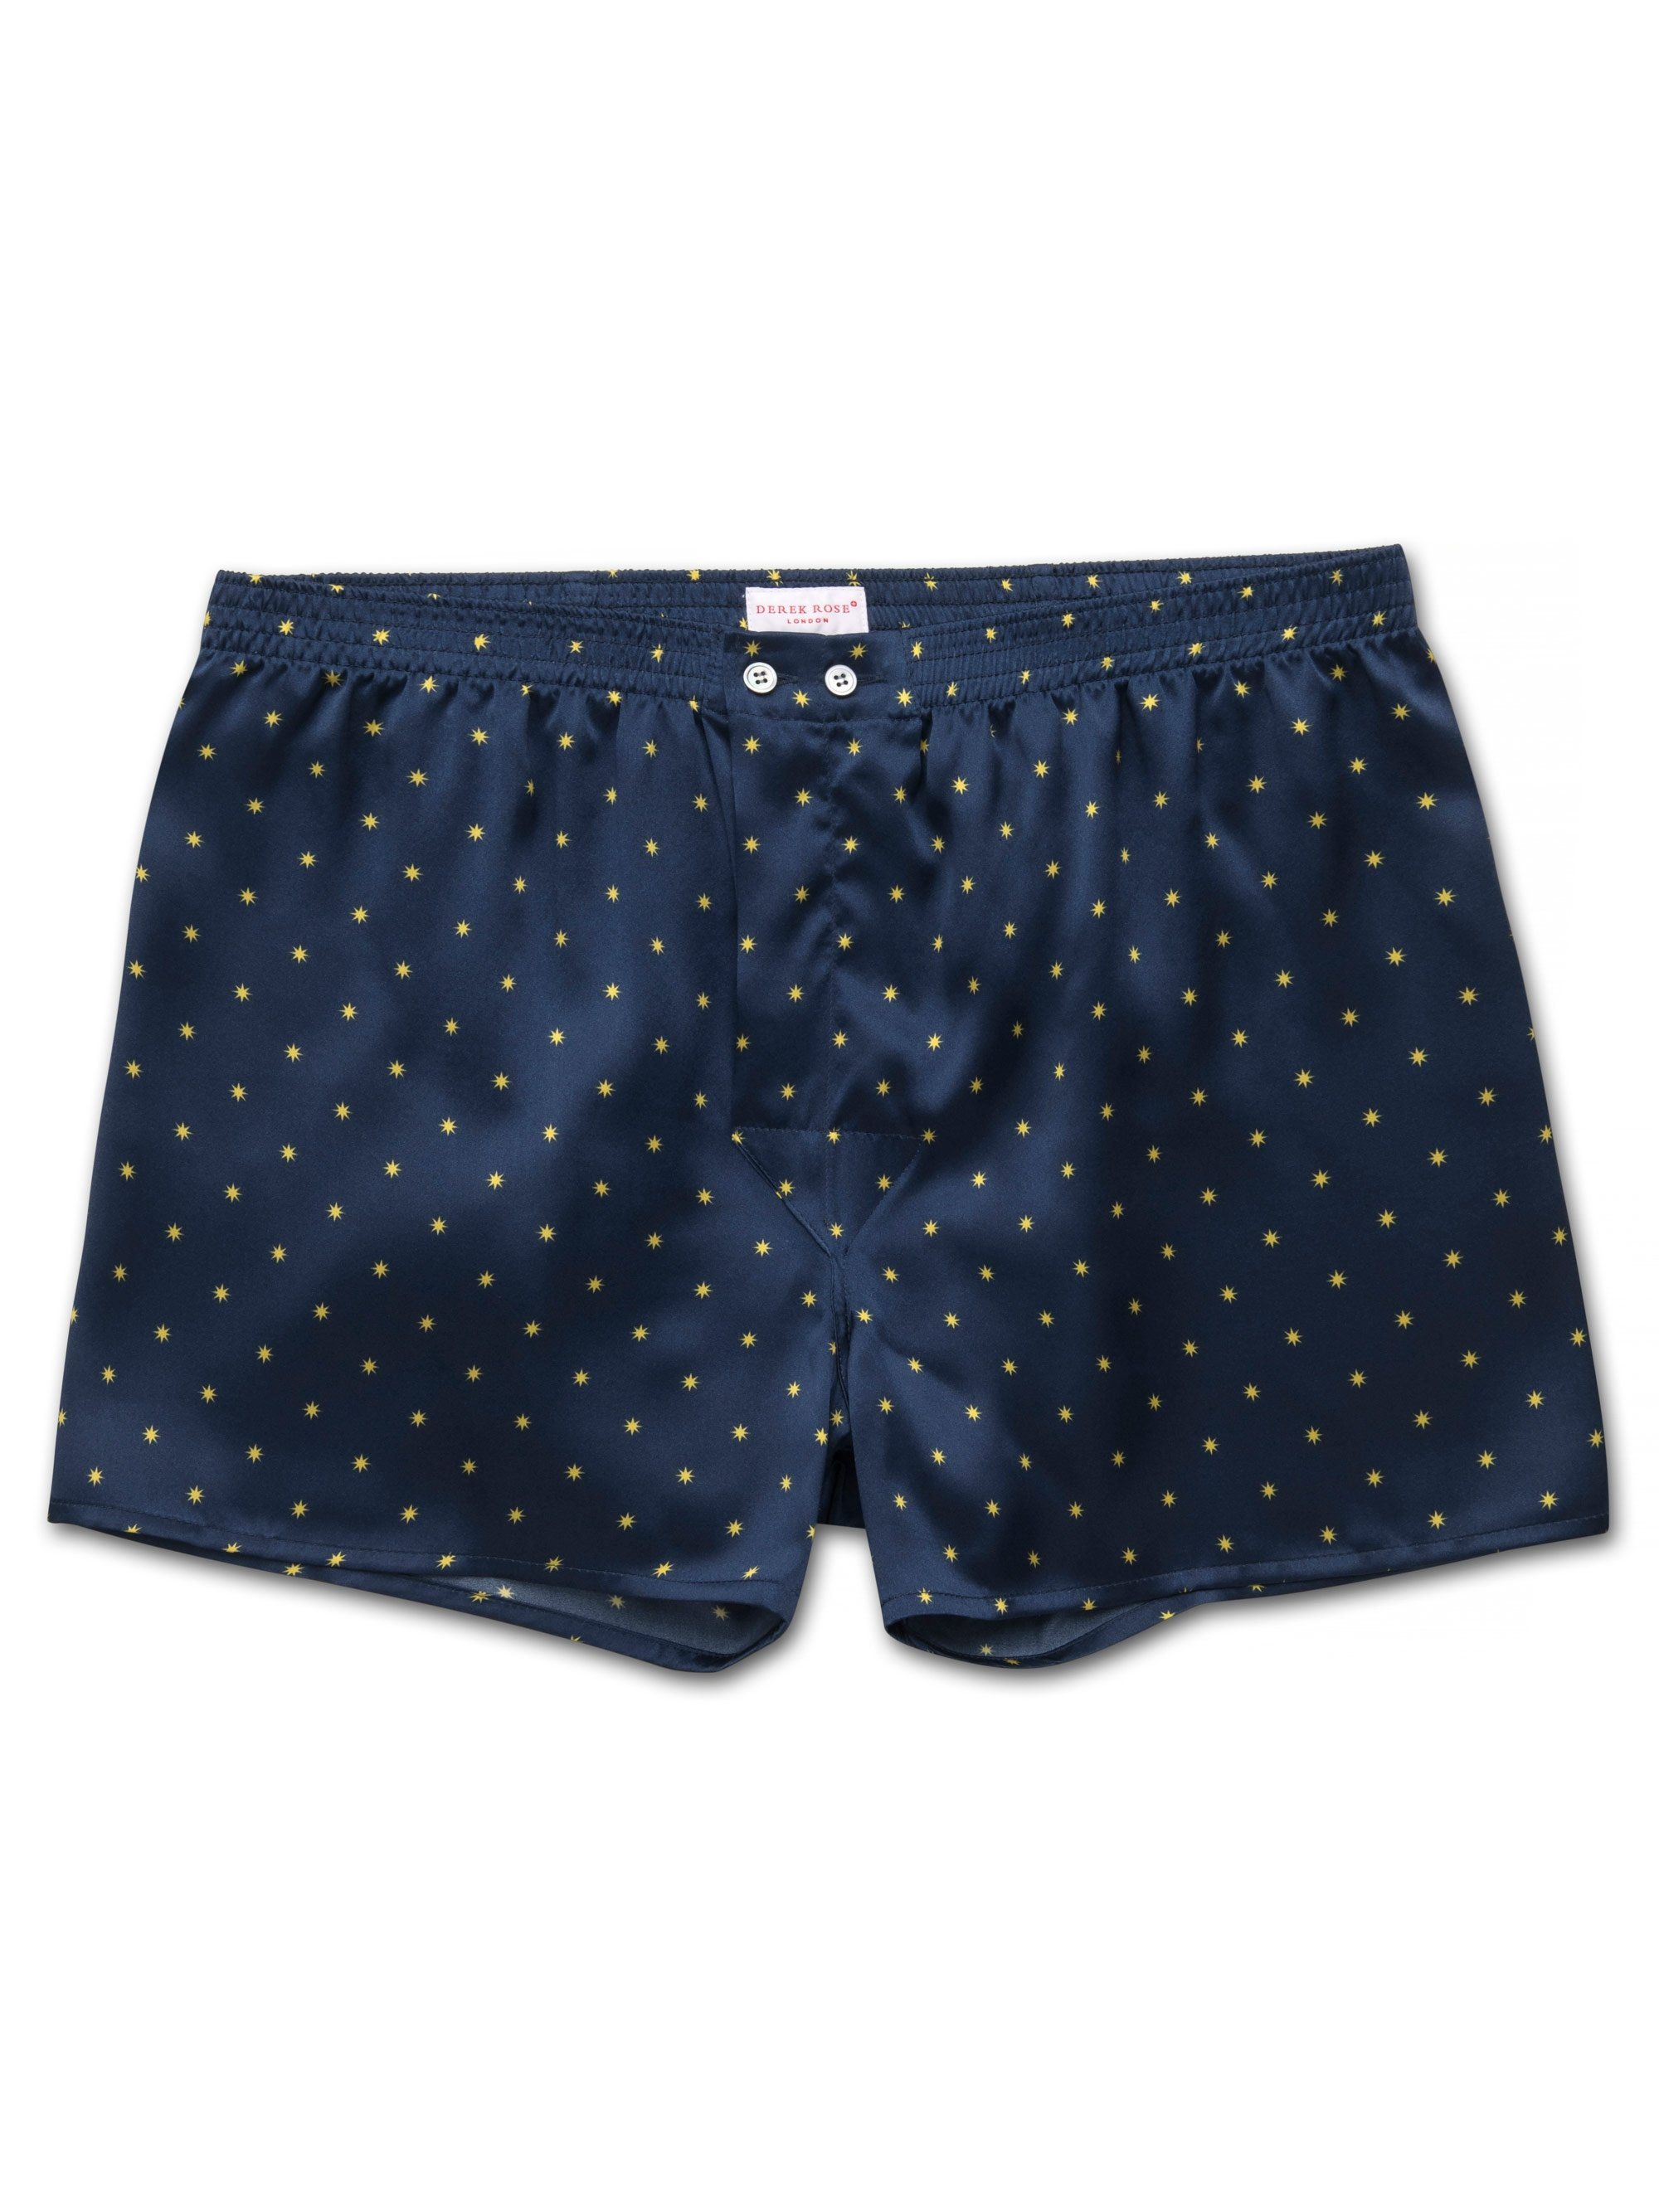 Men's Classic Fit Boxer Shorts Brindisi 54 Pure Silk Satin Navy